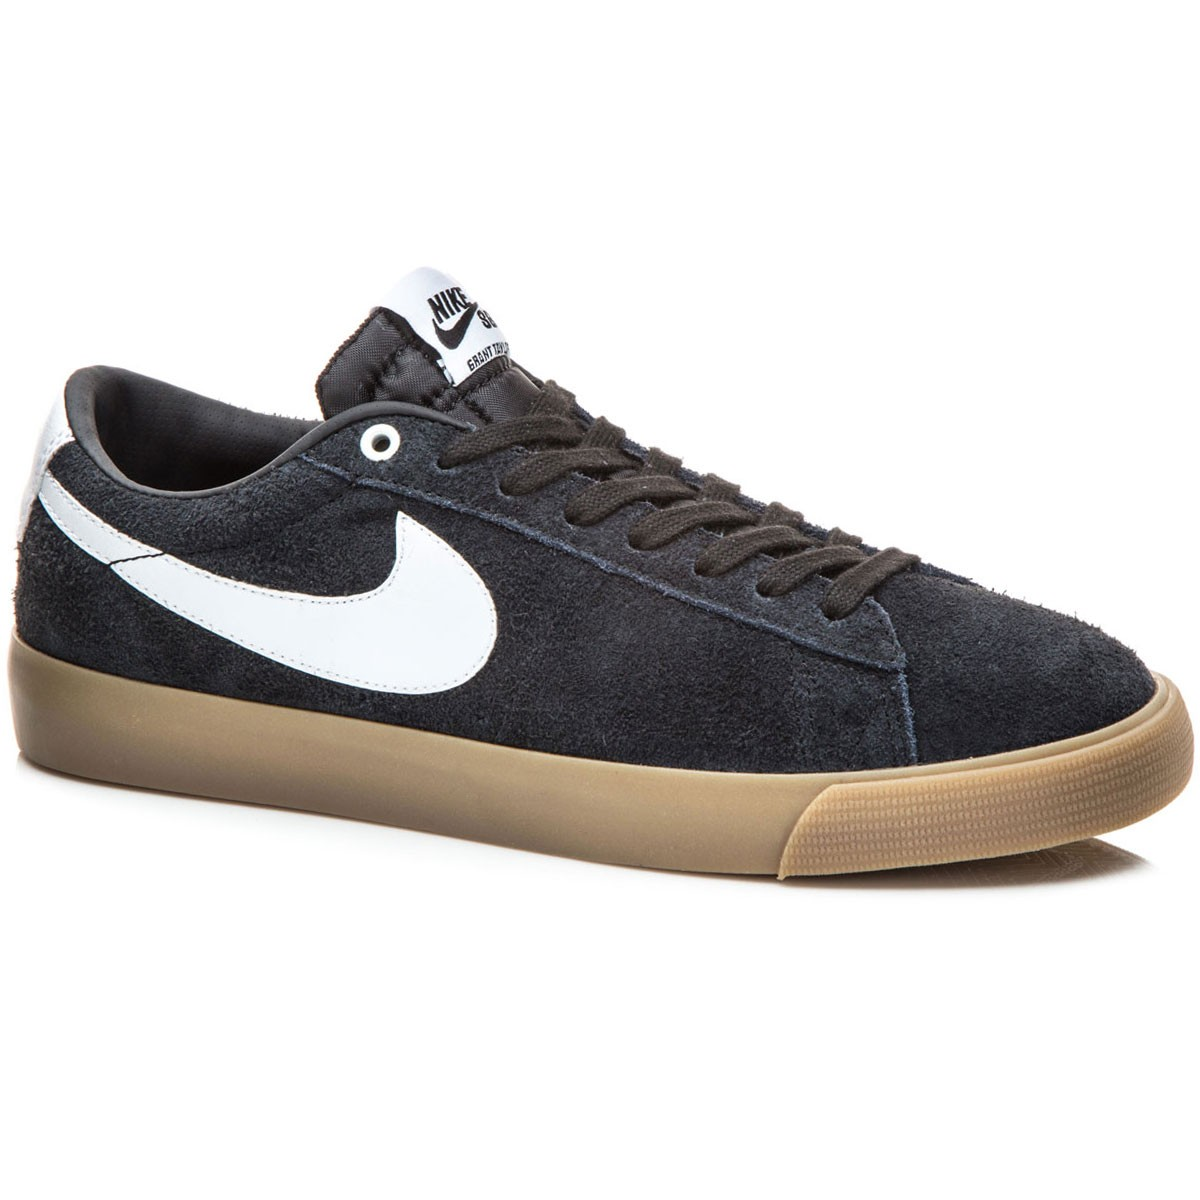 nike blazer low top. Black Bedroom Furniture Sets. Home Design Ideas